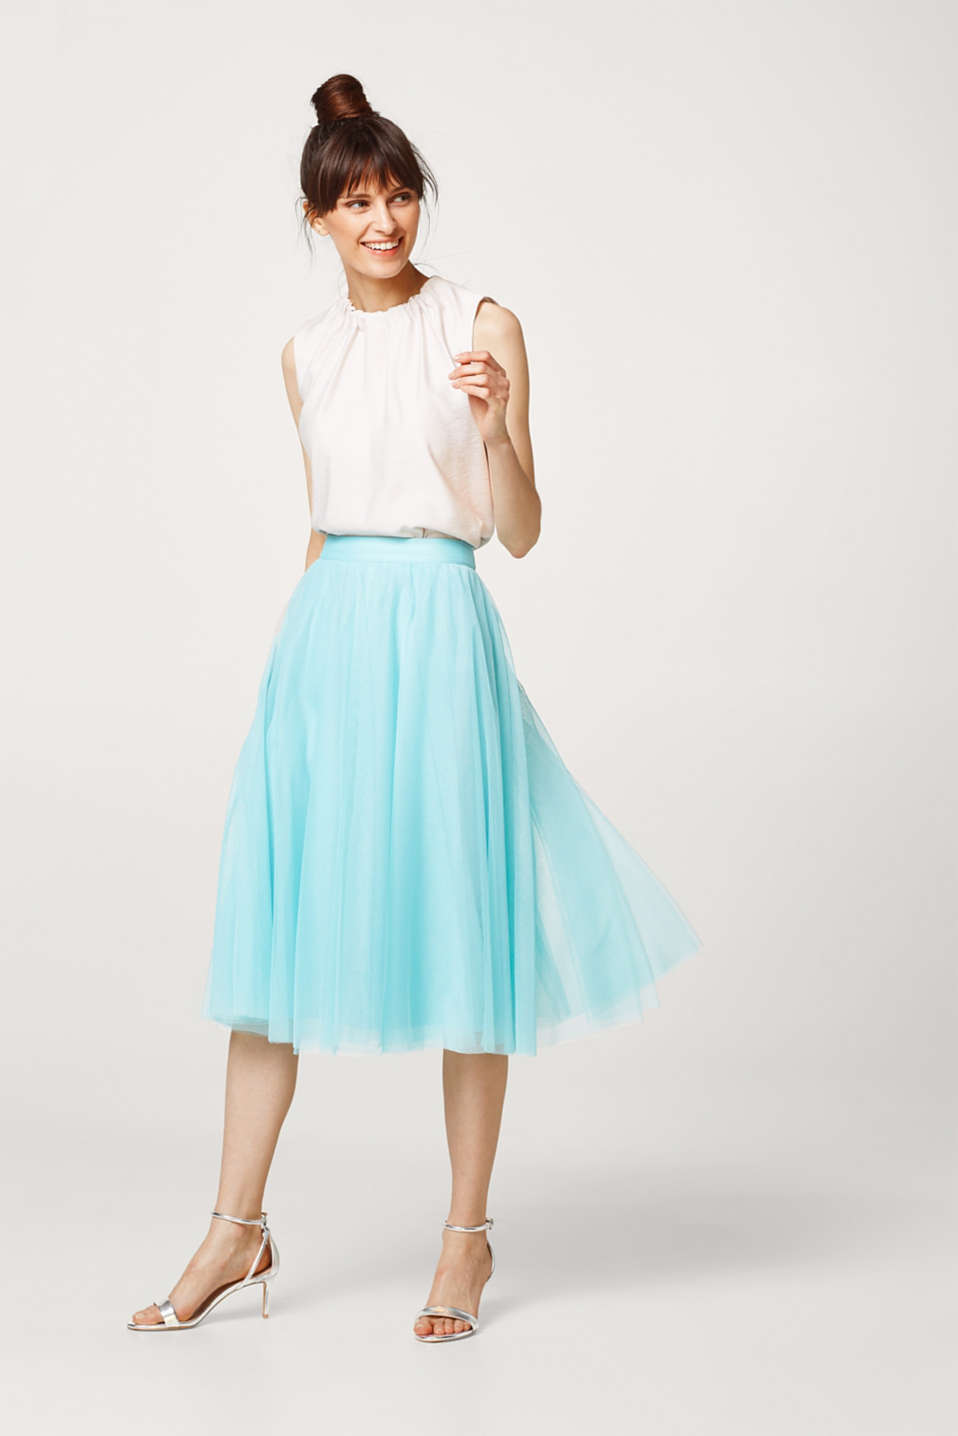 Tulle skirt in a stylish midi length